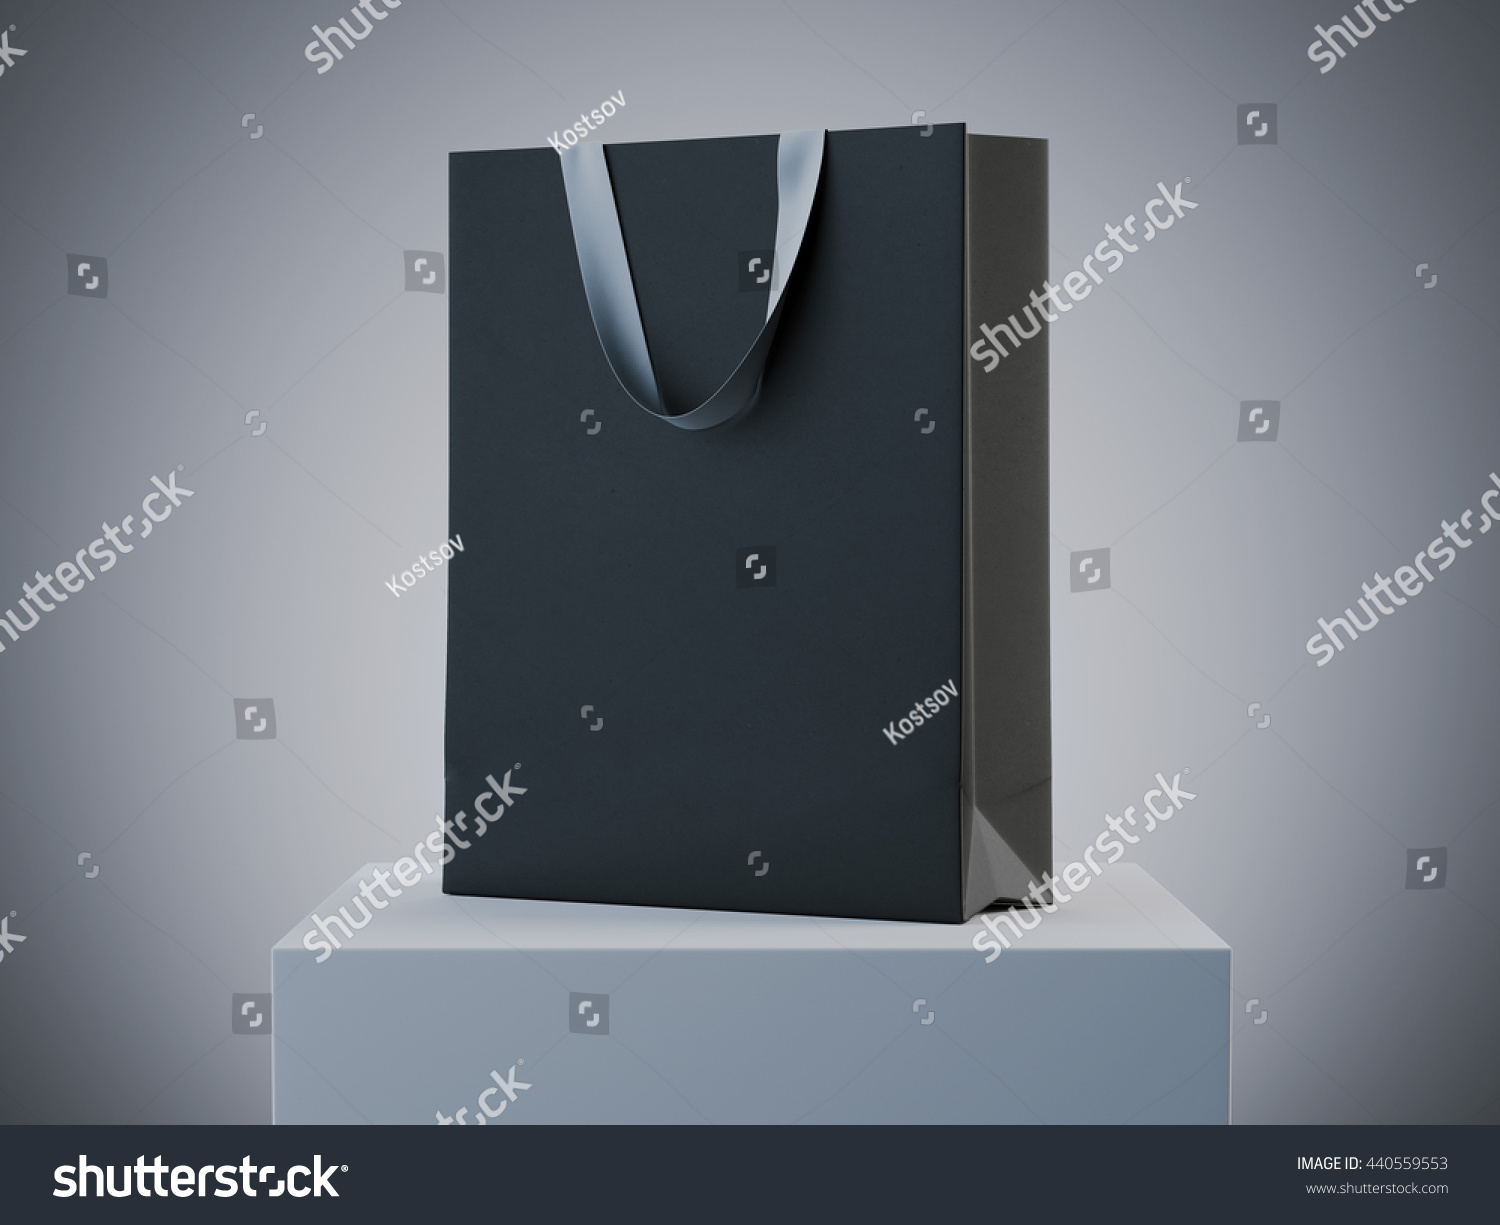 Black shopping bag on white podium in studio 3D rendering